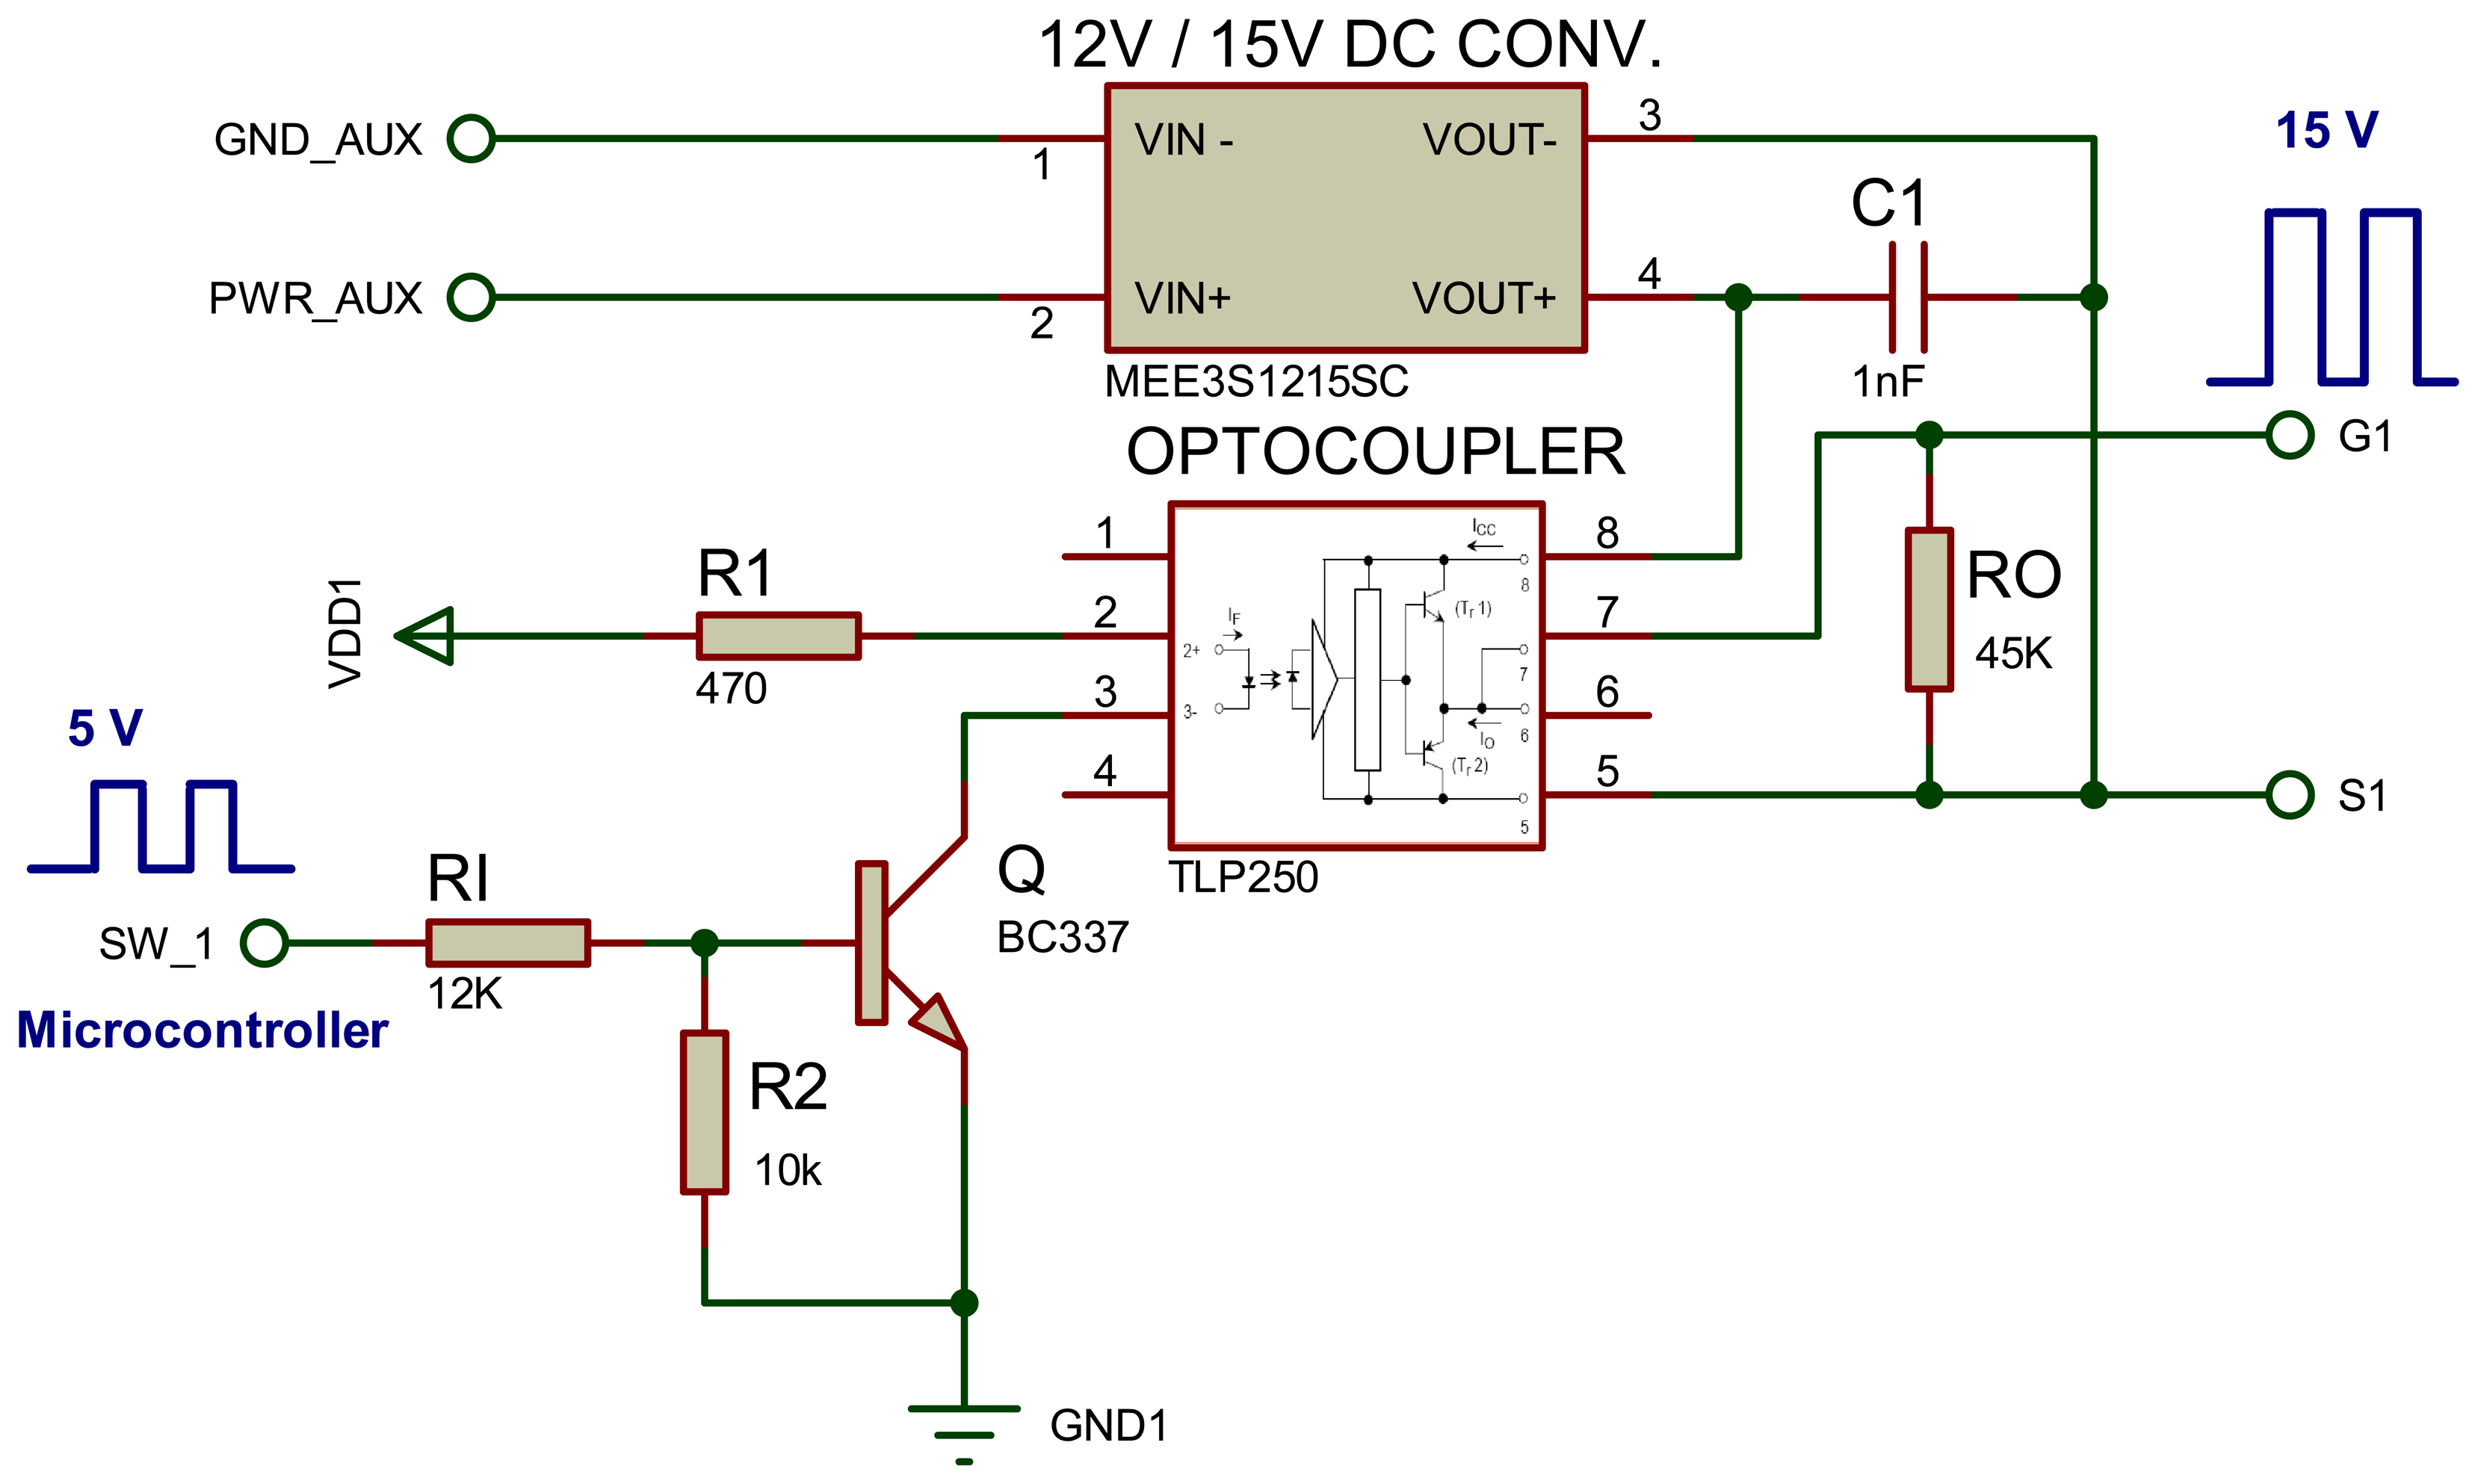 Energies Free Full Text Battery Management Systembalancing Lithium Ion Charger Powersupplycircuit Circuit Diagram 07 02897f17 1024